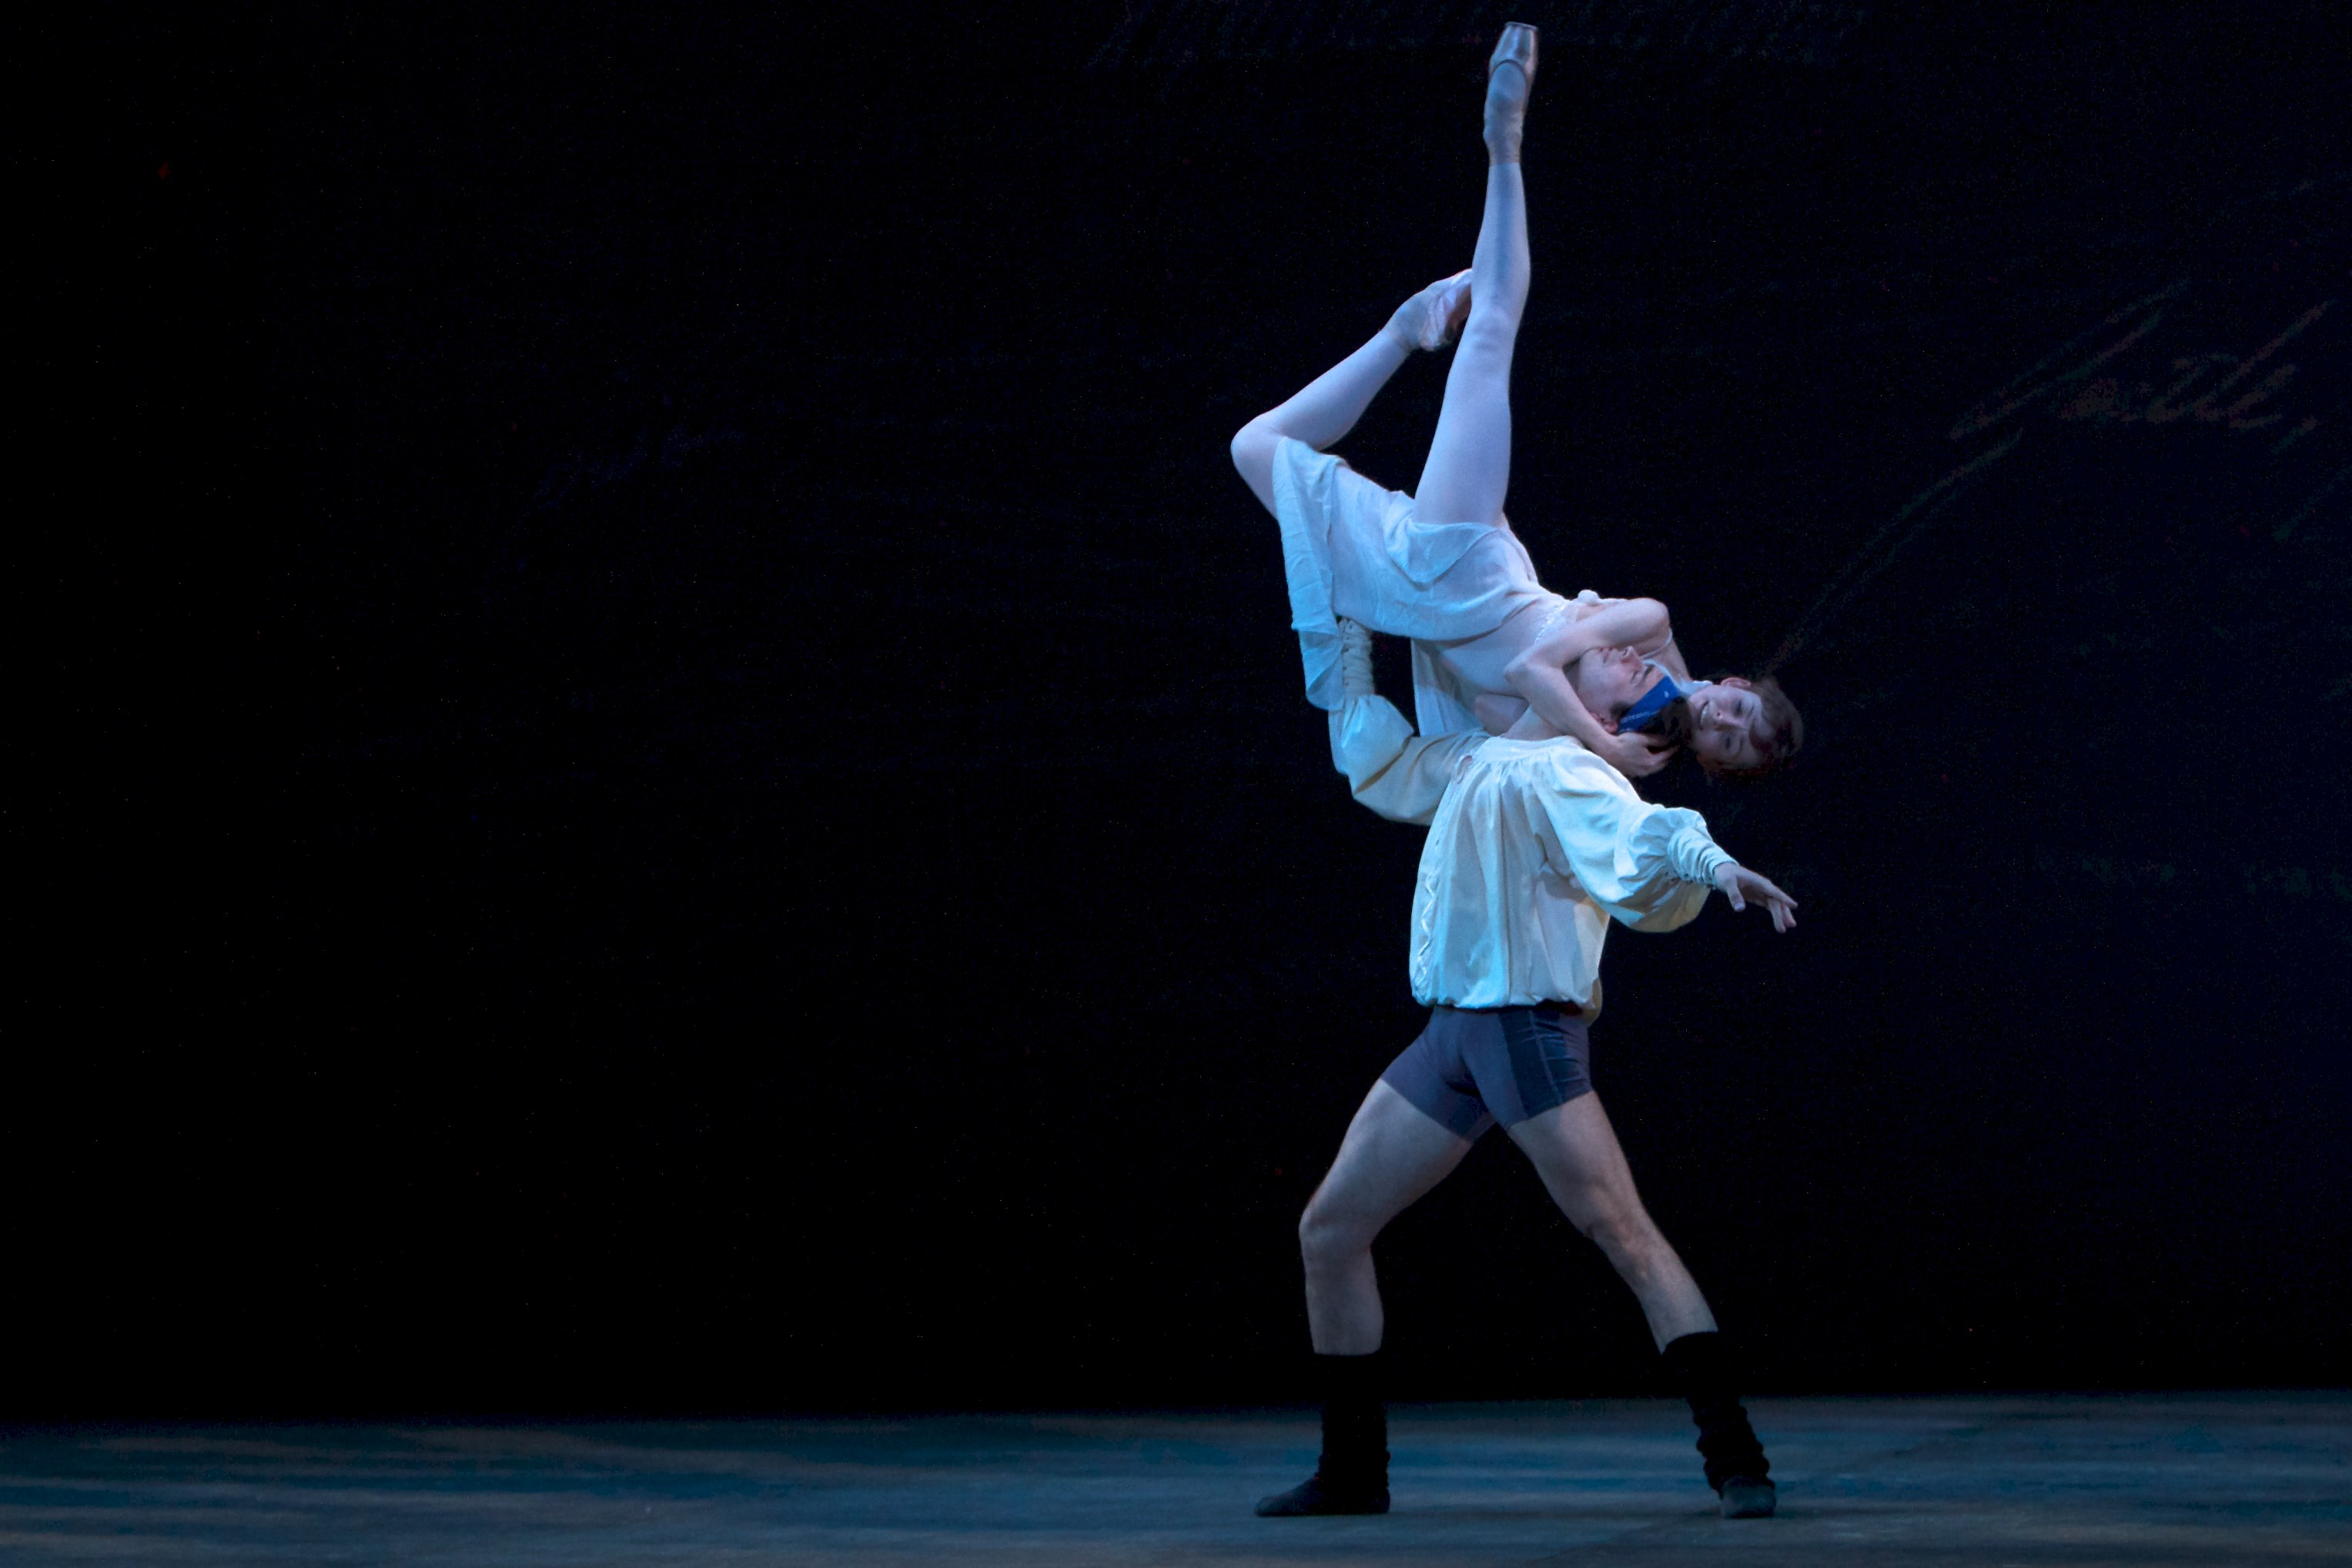 one ballet dancer holds another very high on stage